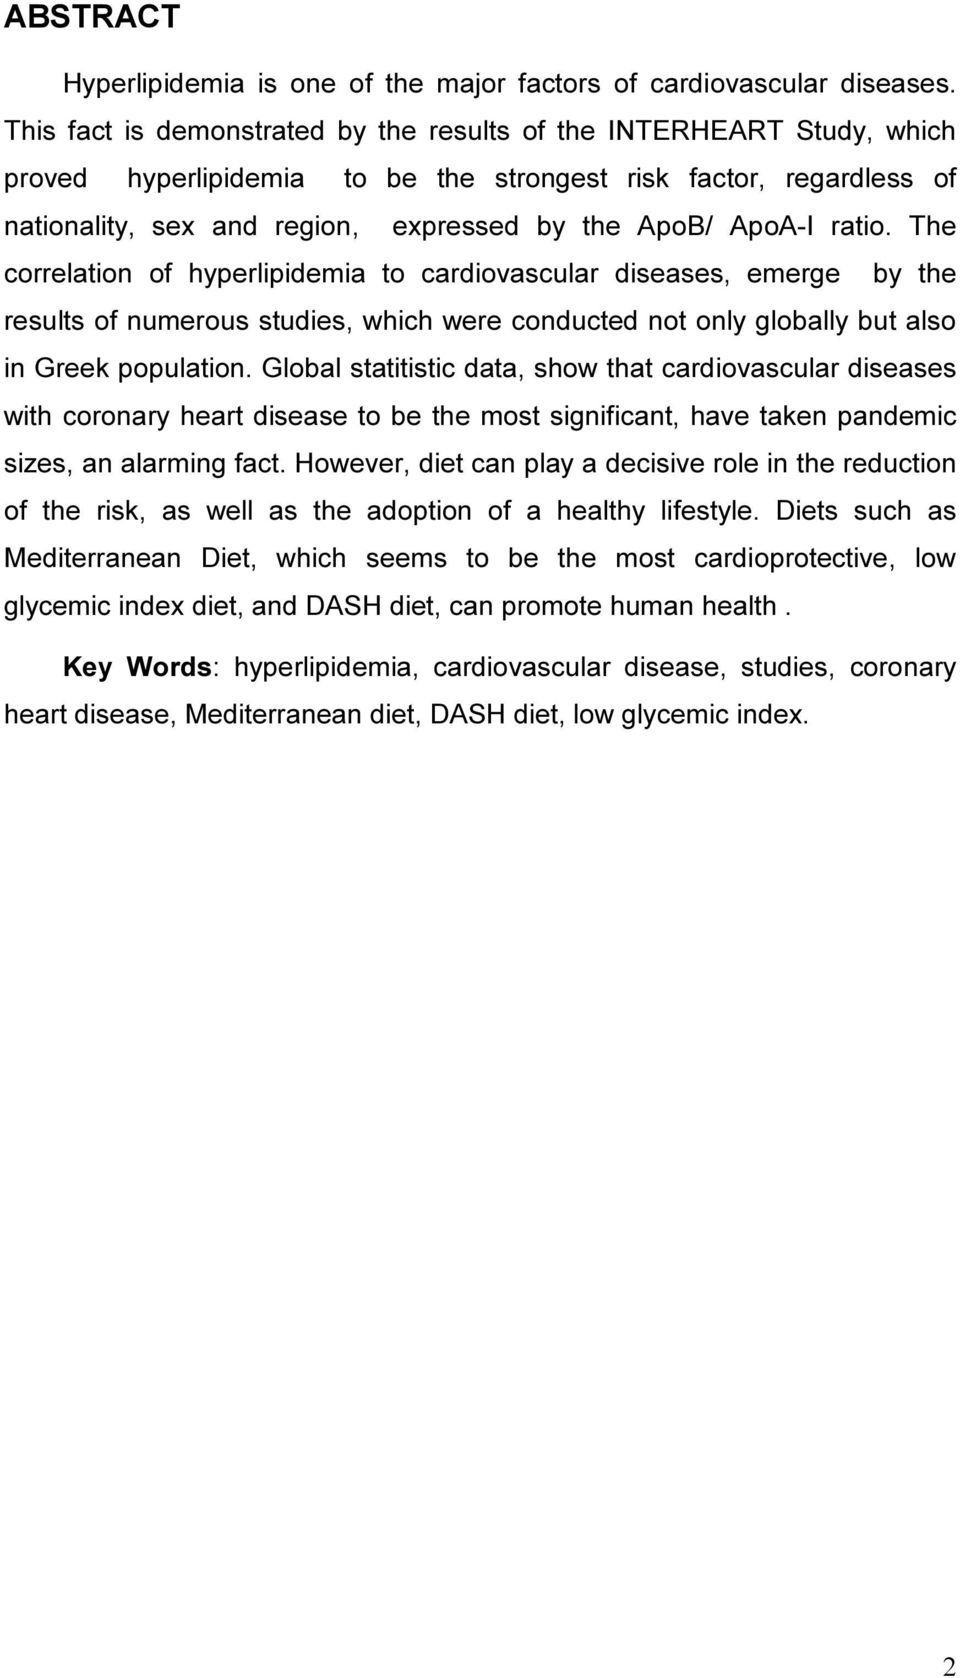 ratio. The correlation of hyperlipidemia to cardiovascular diseases, emerge by the results of numerous studies, which were conducted not only globally but also in Greek population.